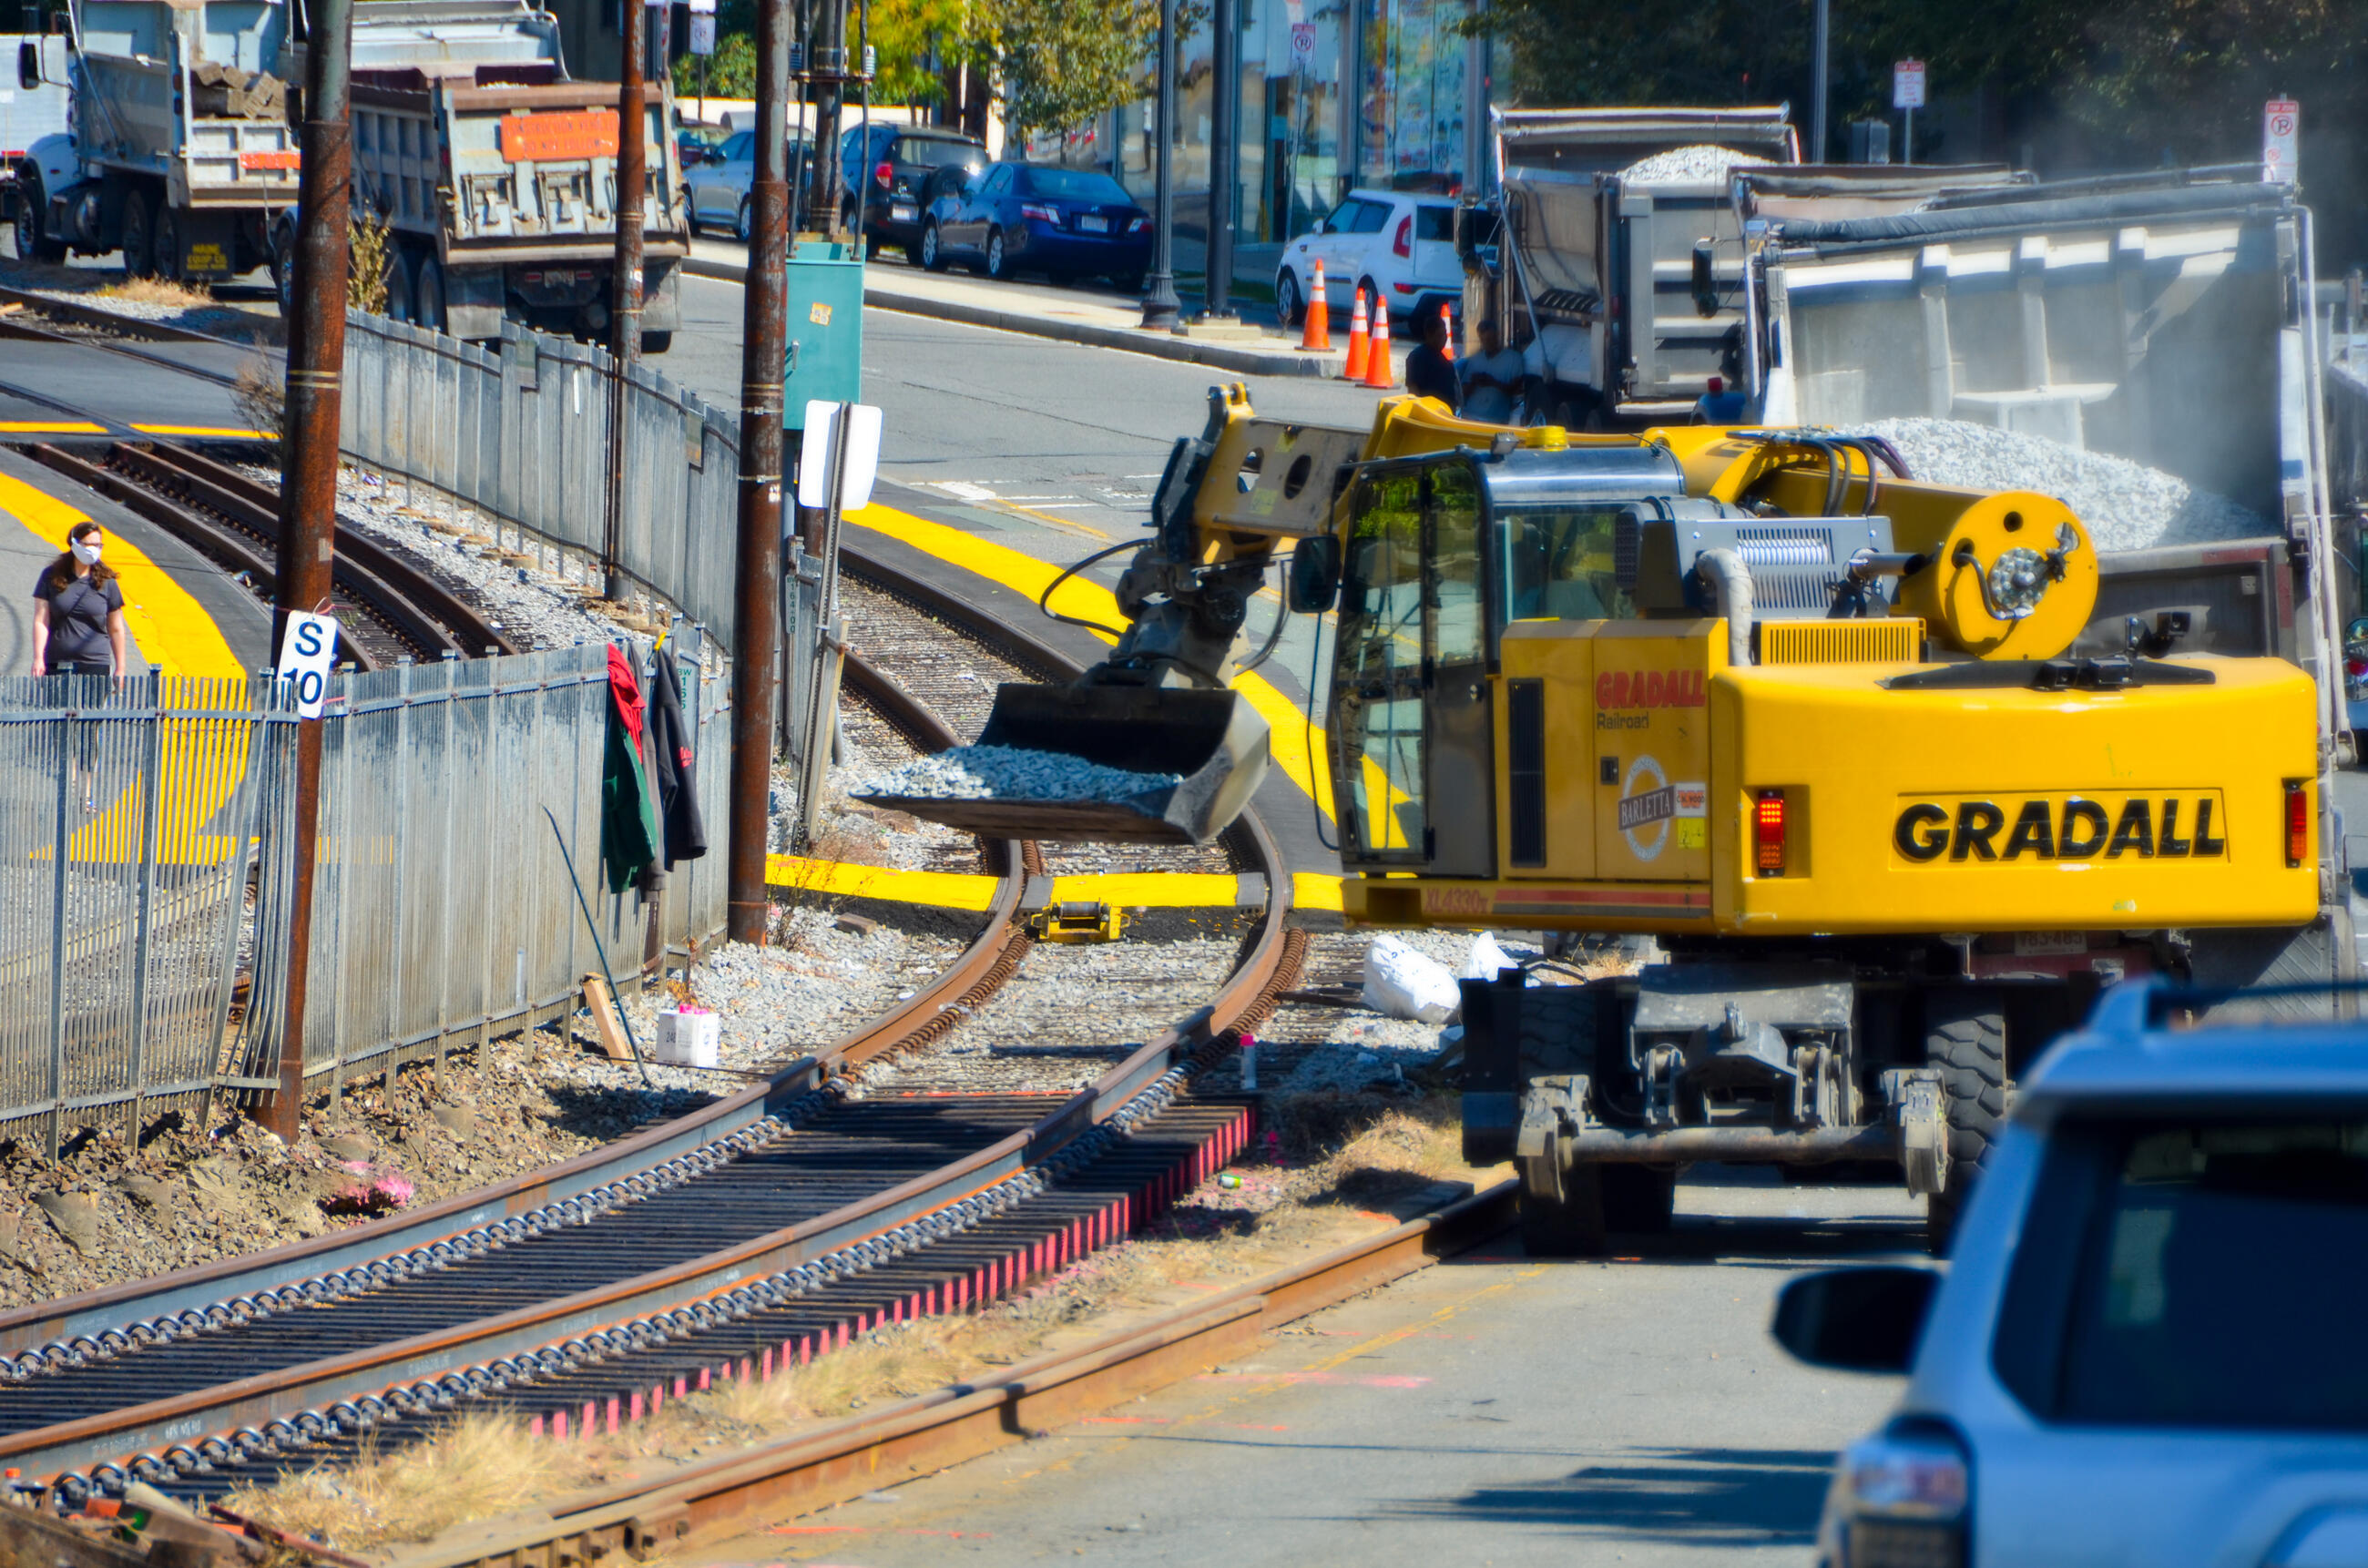 A large construction vehicle moves gravel onto freshly laid track. The track curves around a fence next to a street.